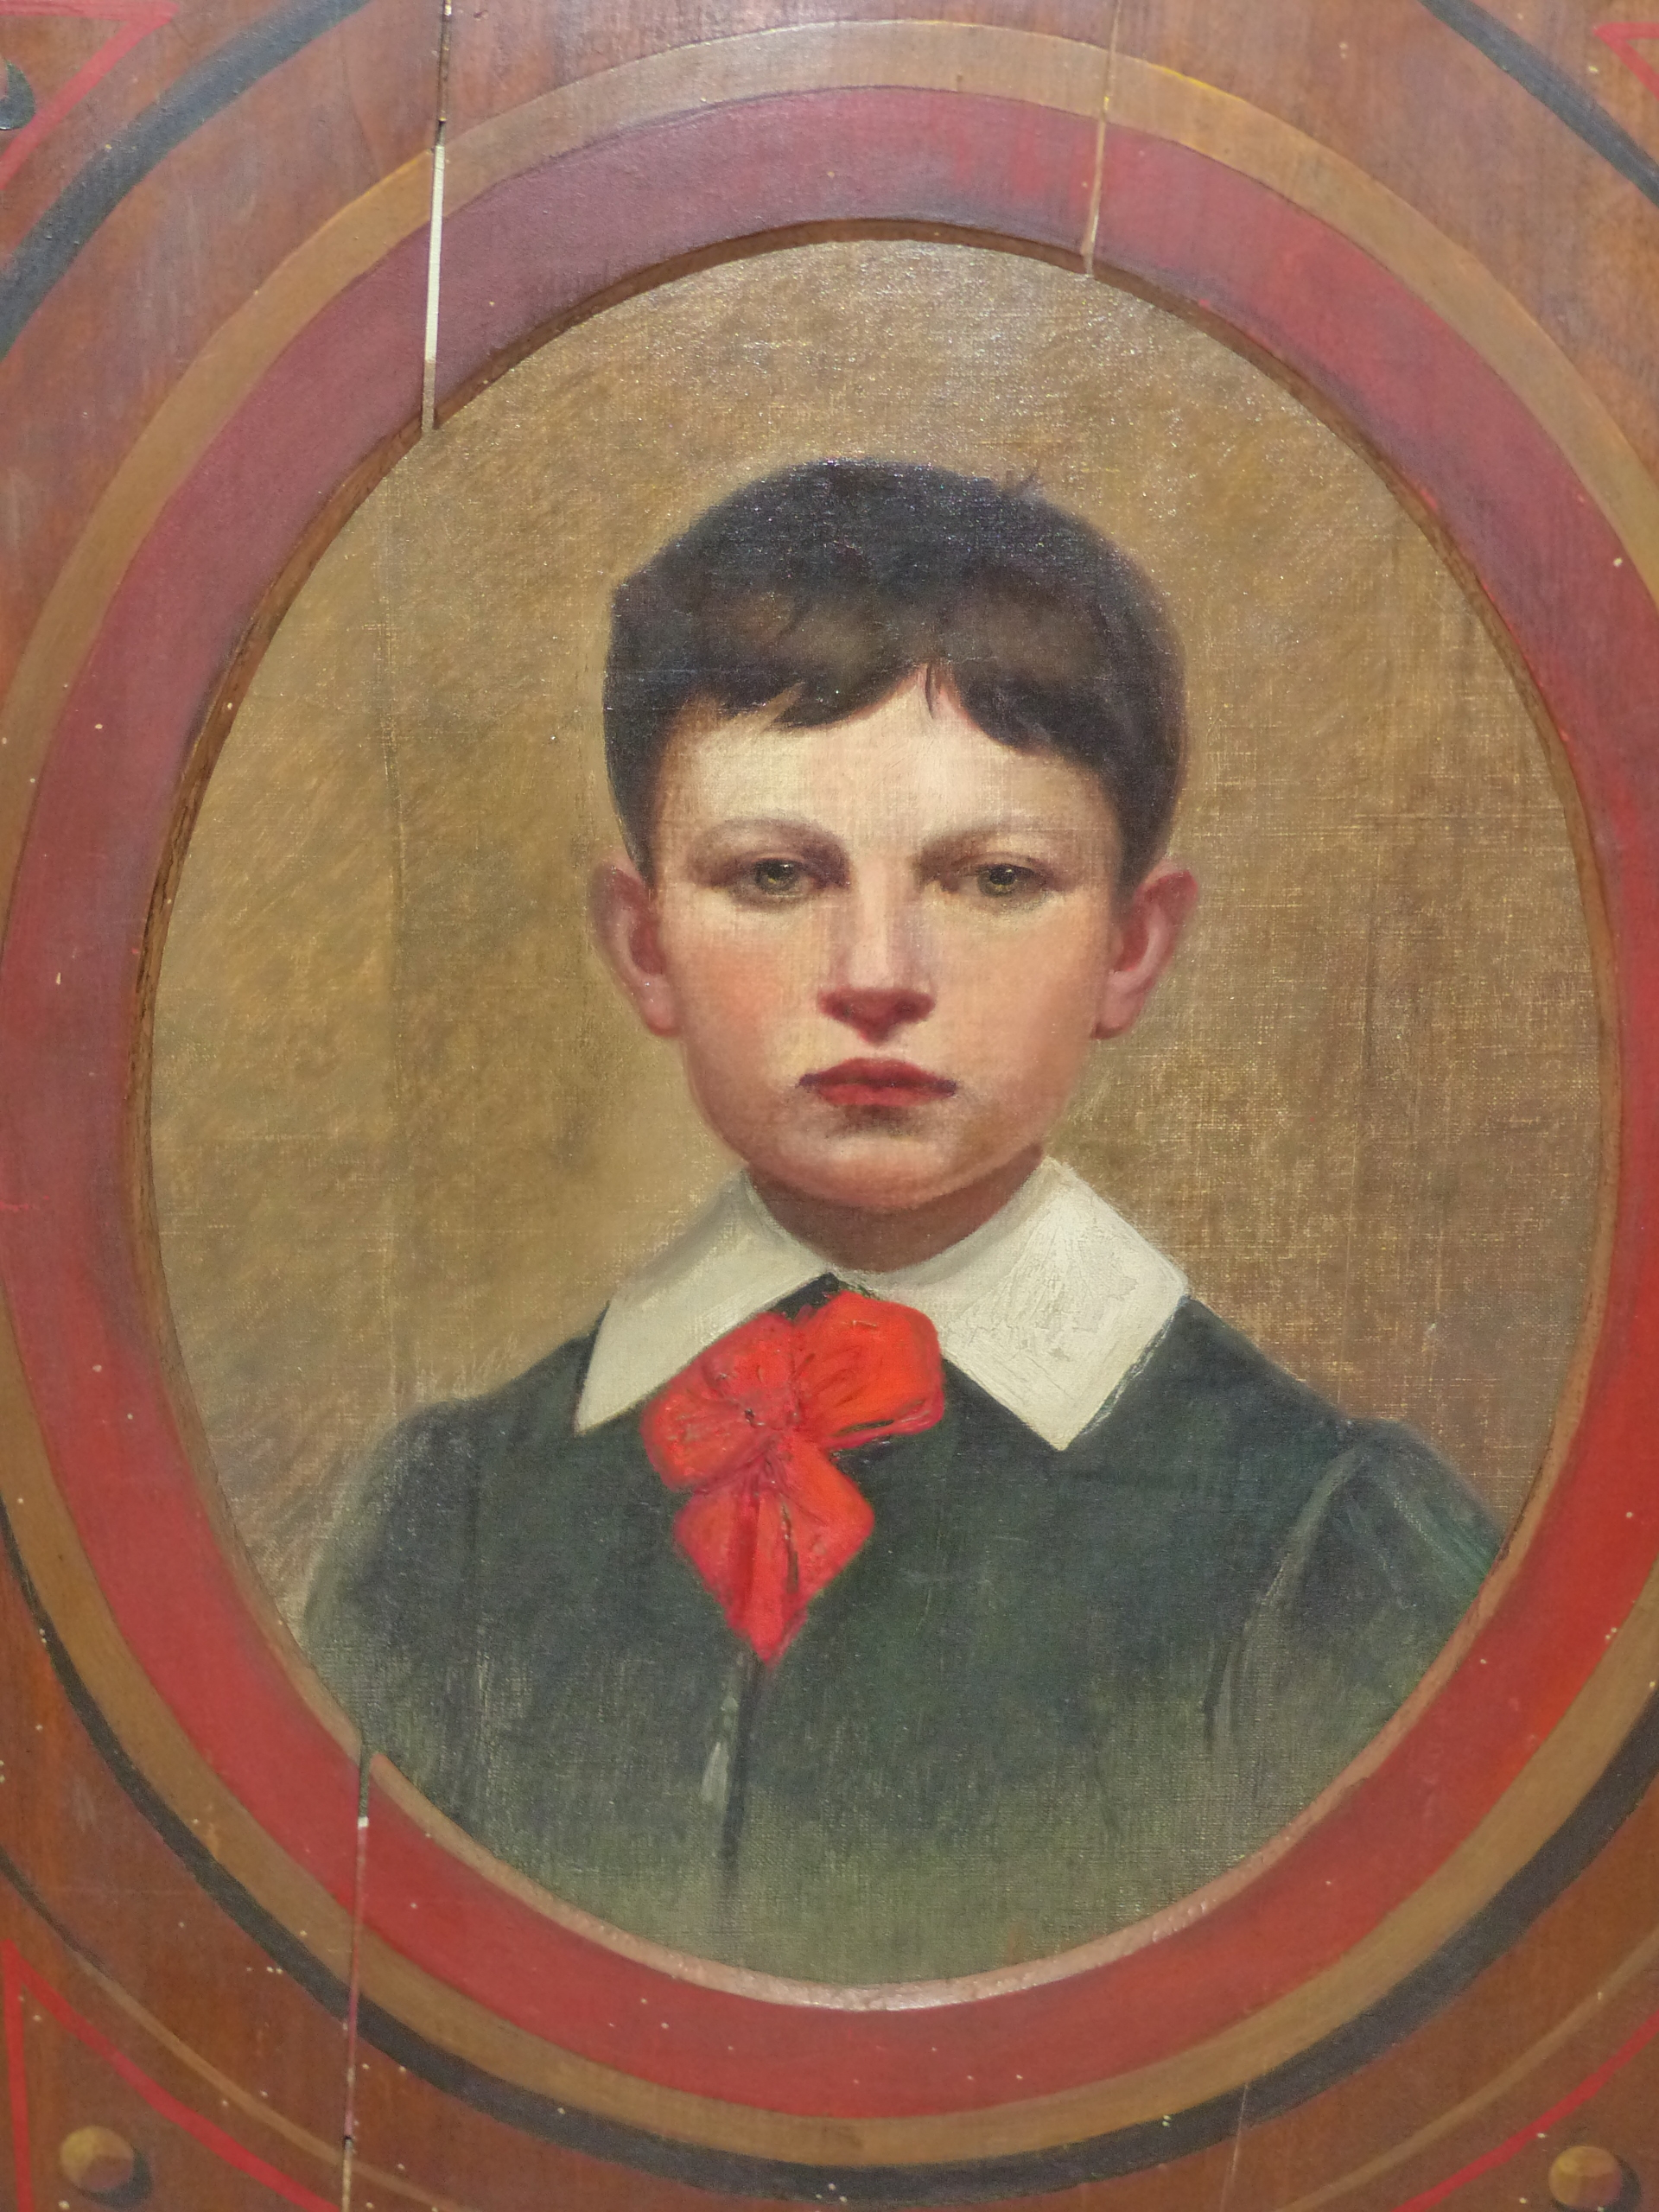 19th CENTURY CONTINENTAL SCHOOL FEIGNED OVAL PORTRAIT OF A BOY. OIL ON CANVAS DECORATIVE PAINTED